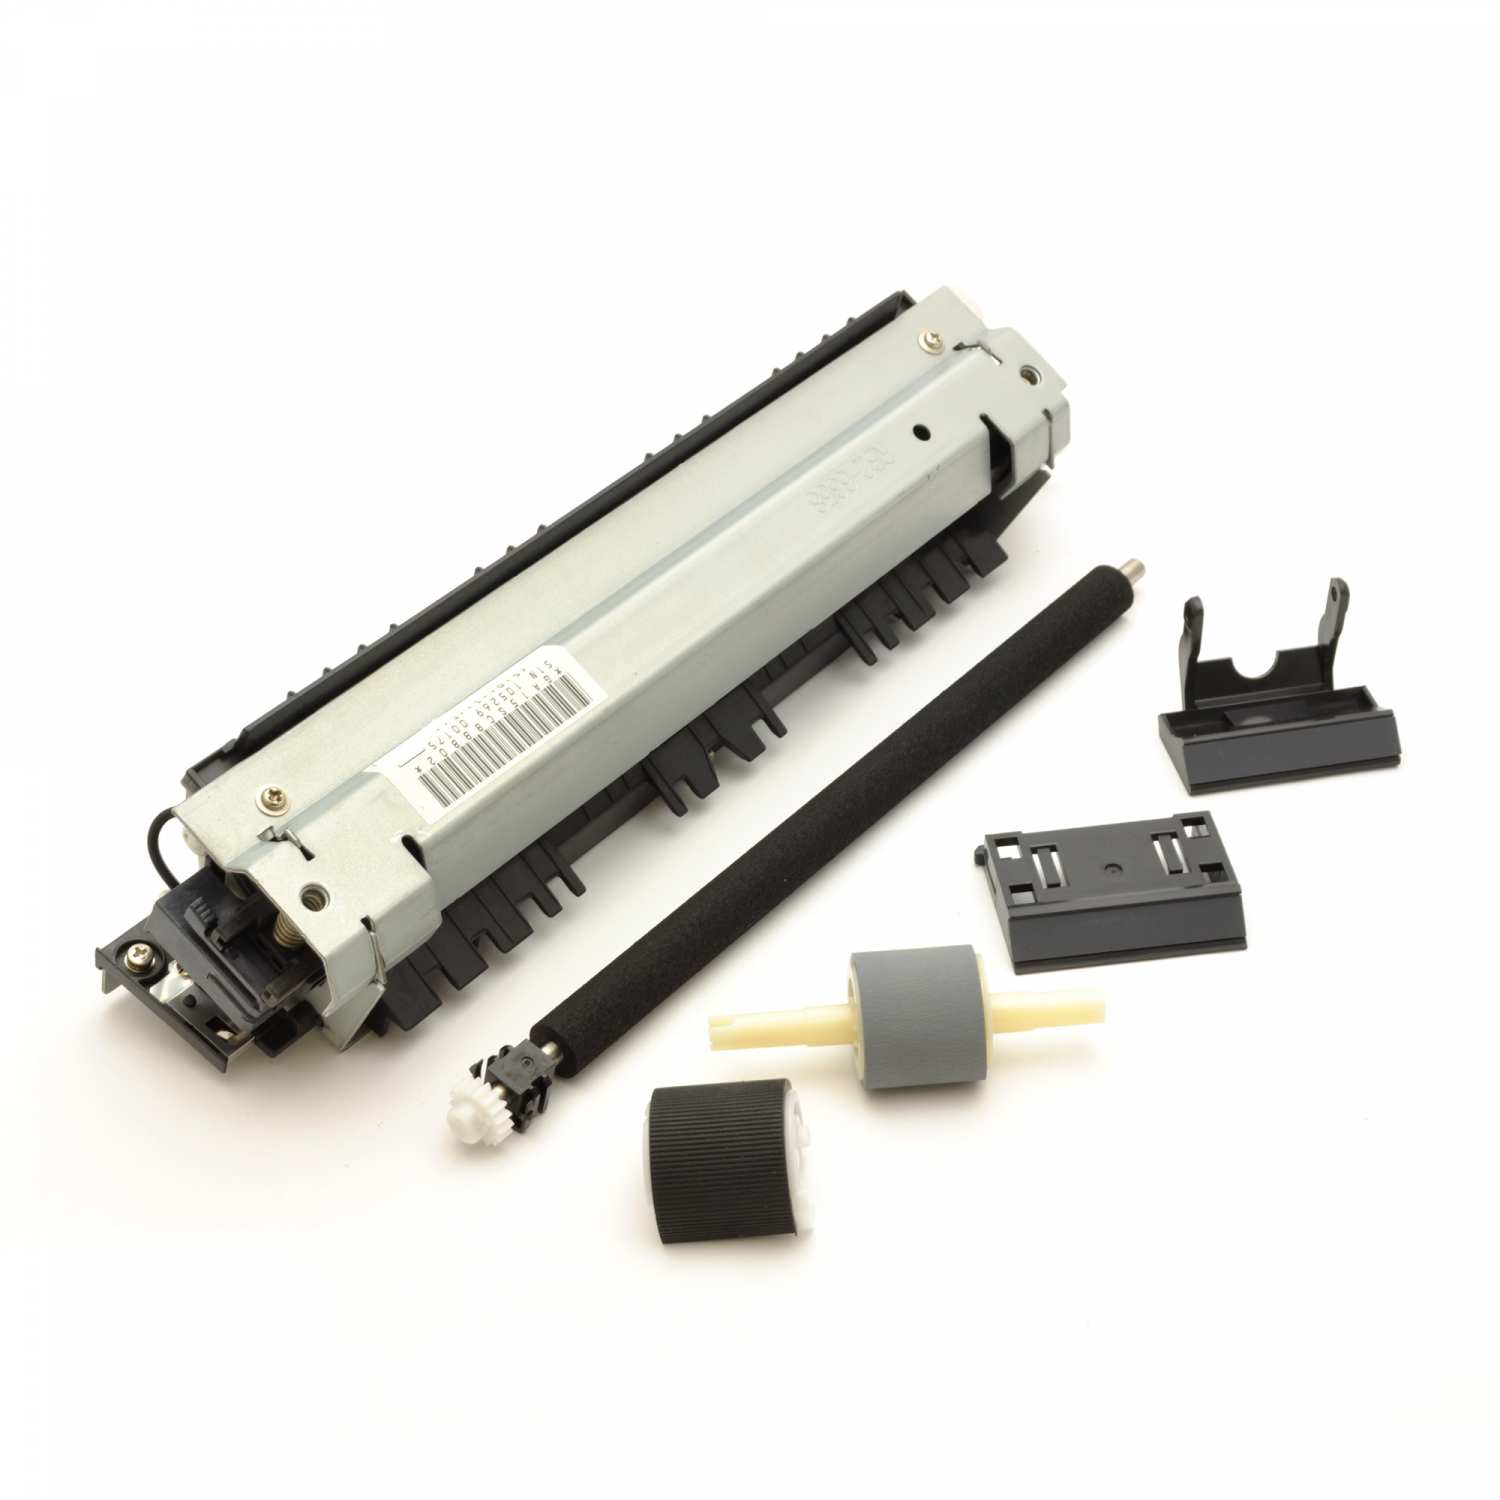 H3978-60001-AEX Maintenance Kit (110V) Exchange for HP LaserJet 2200